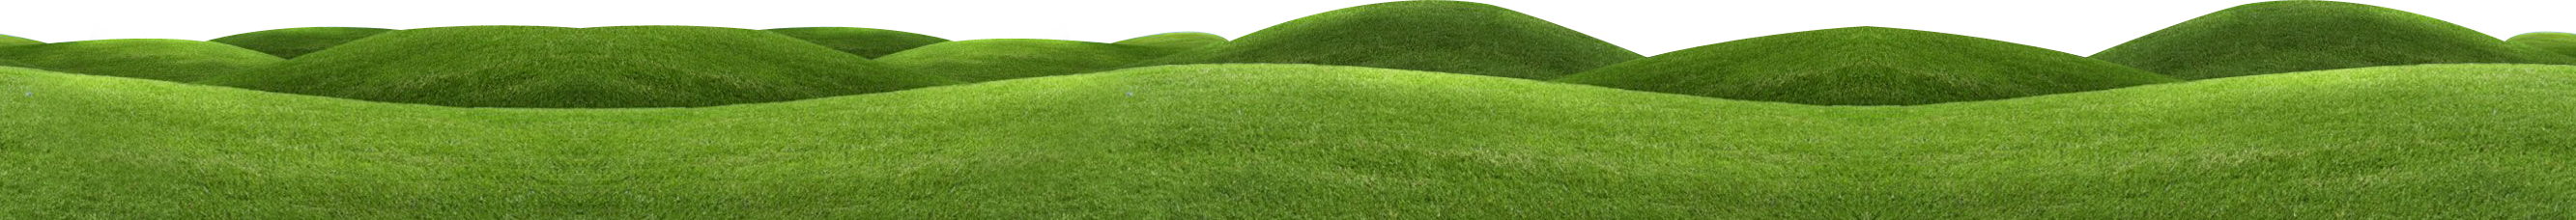 Hill PNG Images Transparent Free Download.